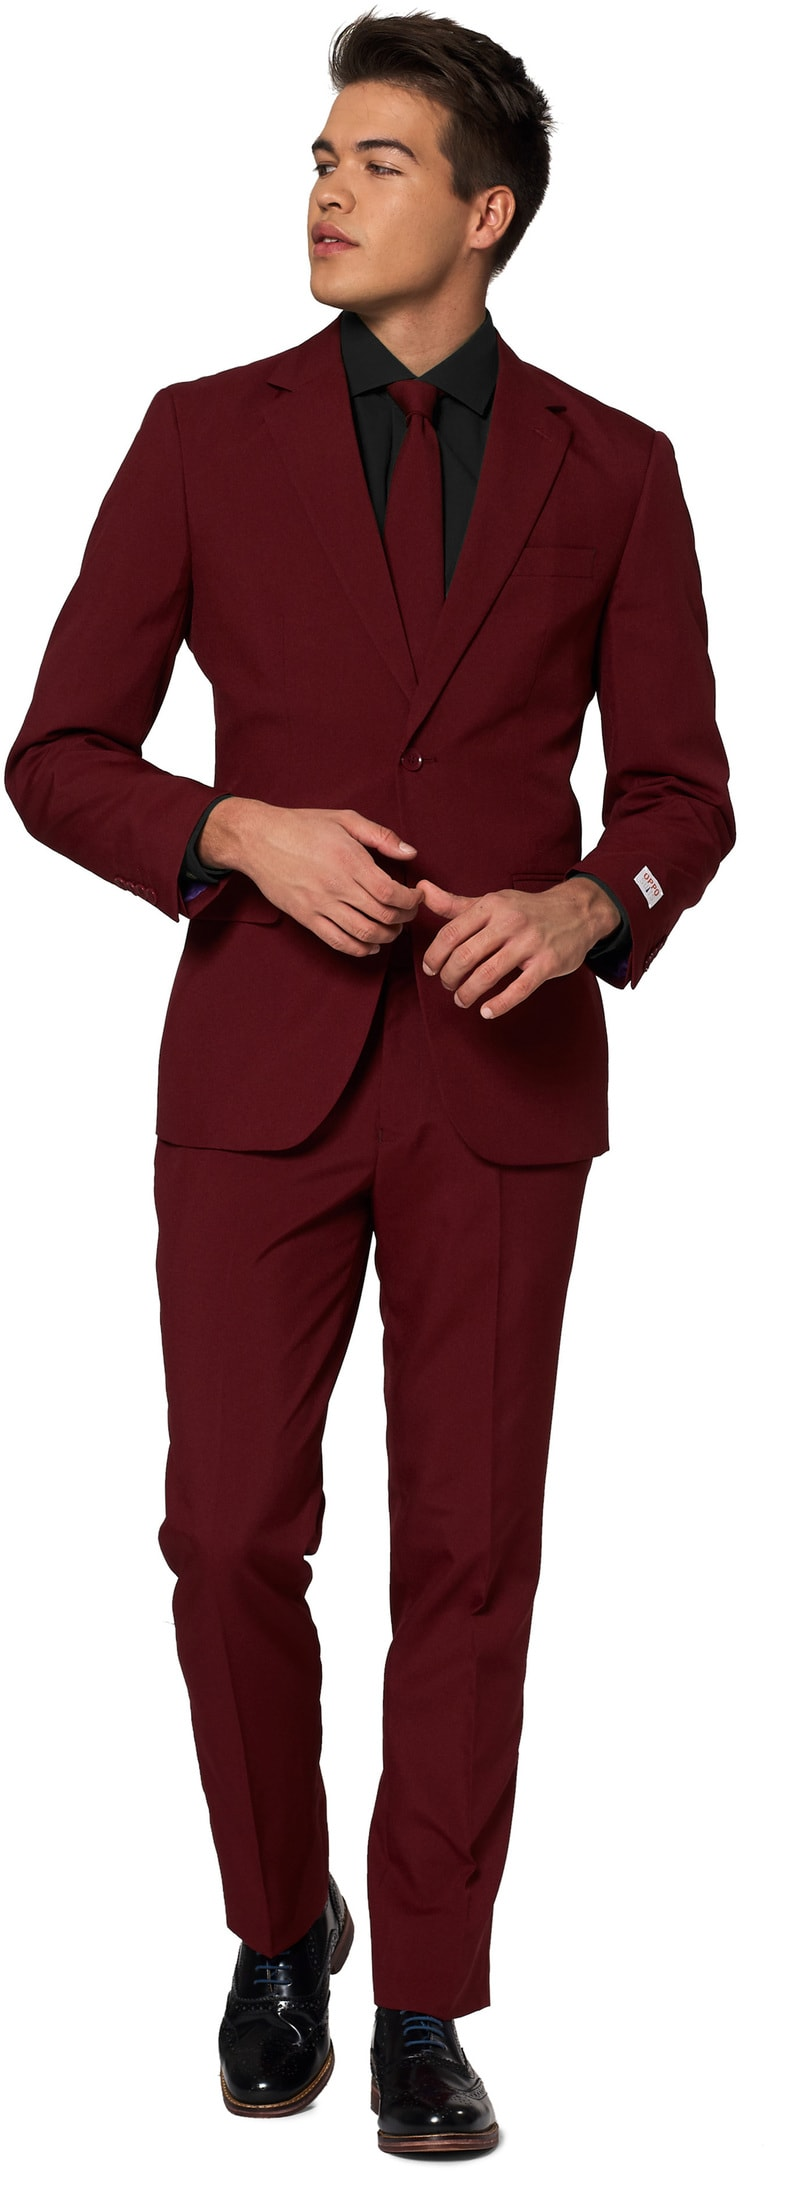 OppoSuits Blazing Burgundy Suit photo 0